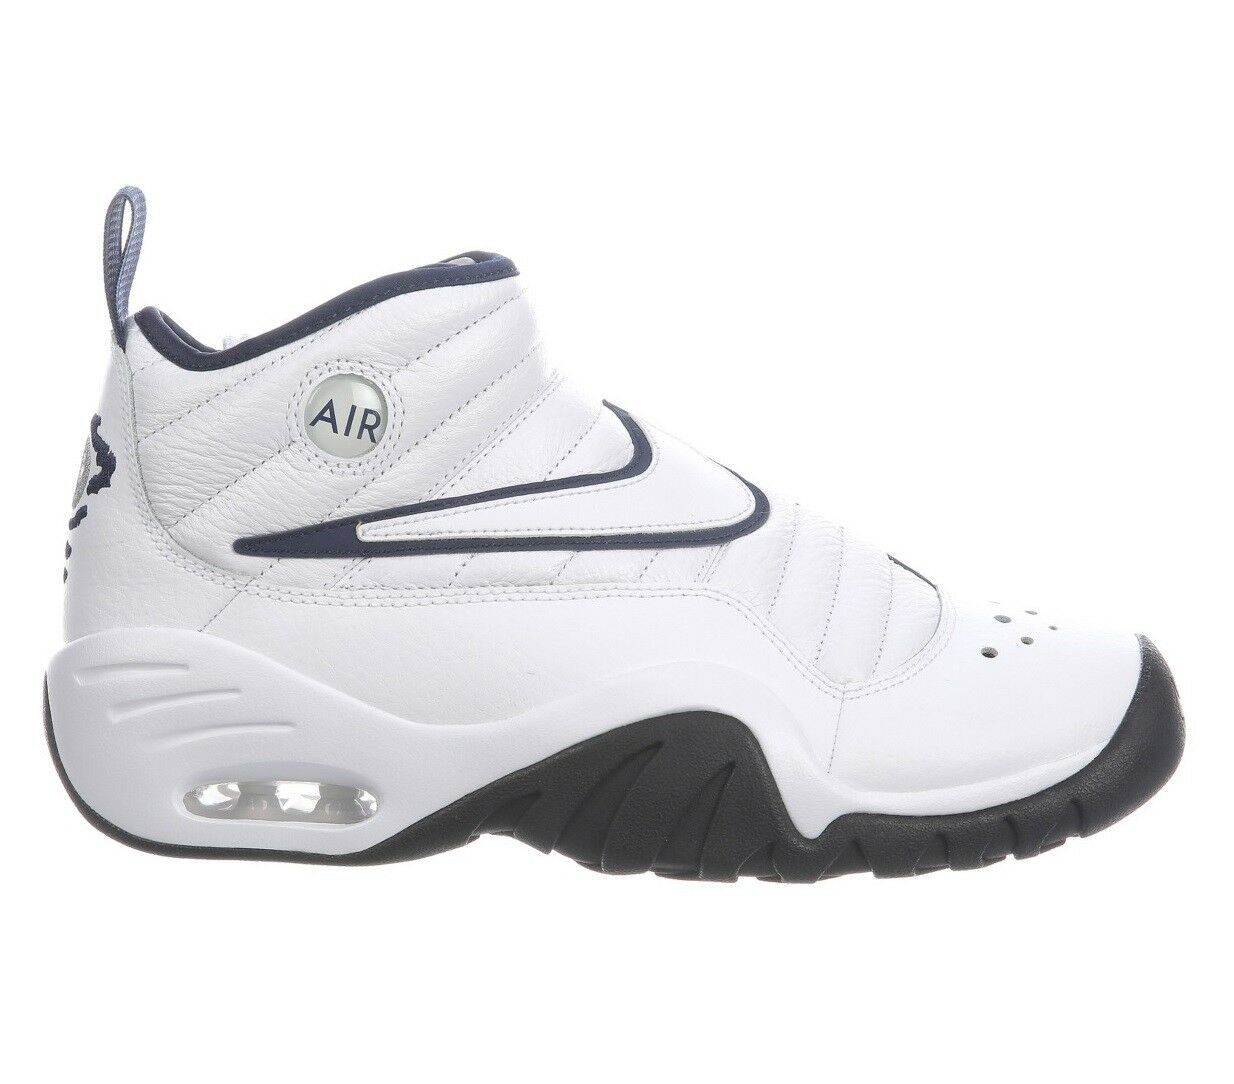 Nike Air Shake Ndestrukt Mens 880869-102 White Navy Basketball Shoes Comfortable The latest discount shoes for men and women